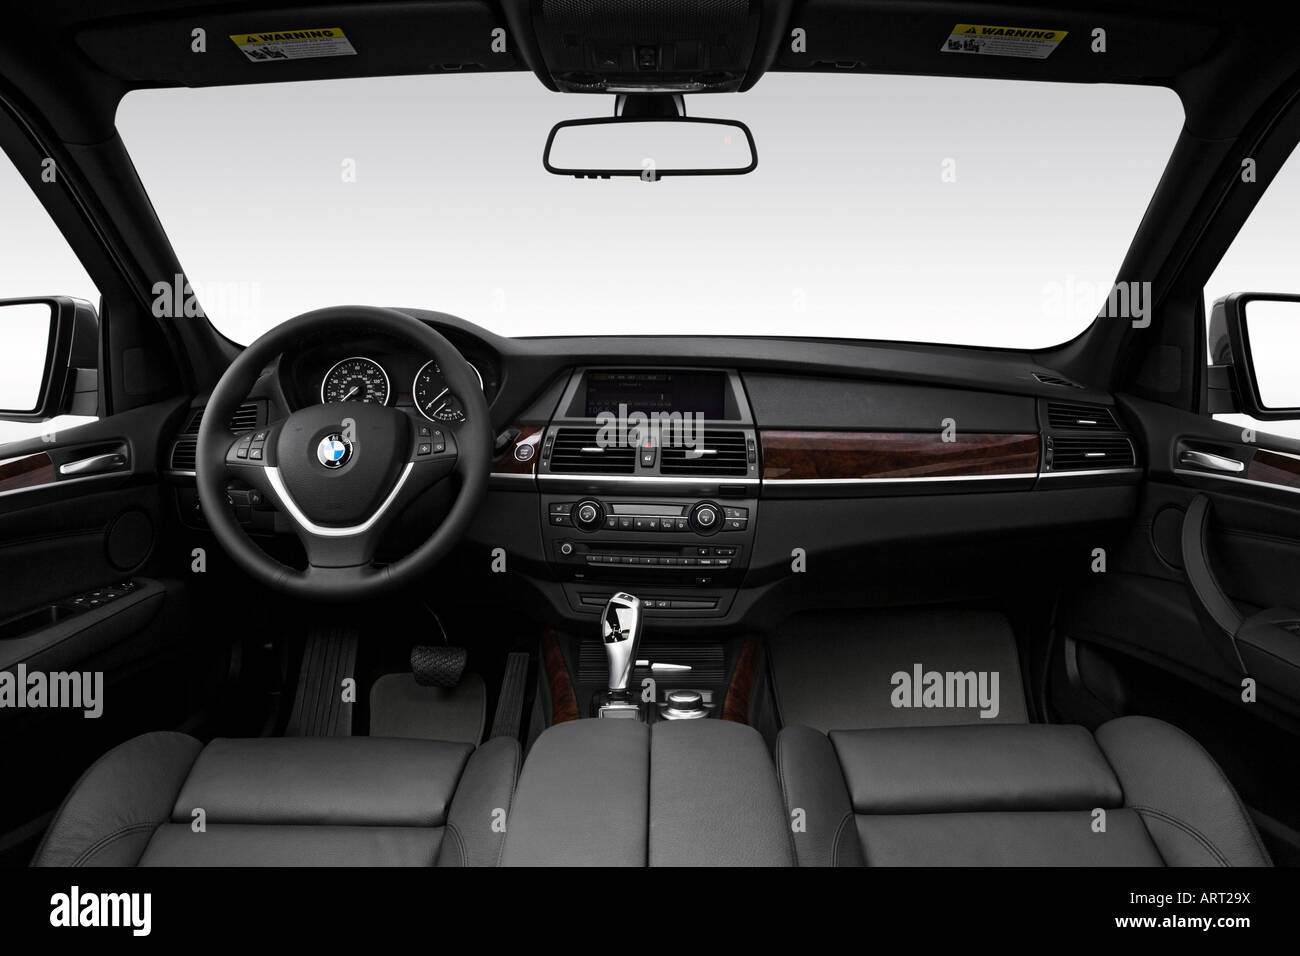 2008 bmw x5 3.0si in gray - dashboard, center console, gear